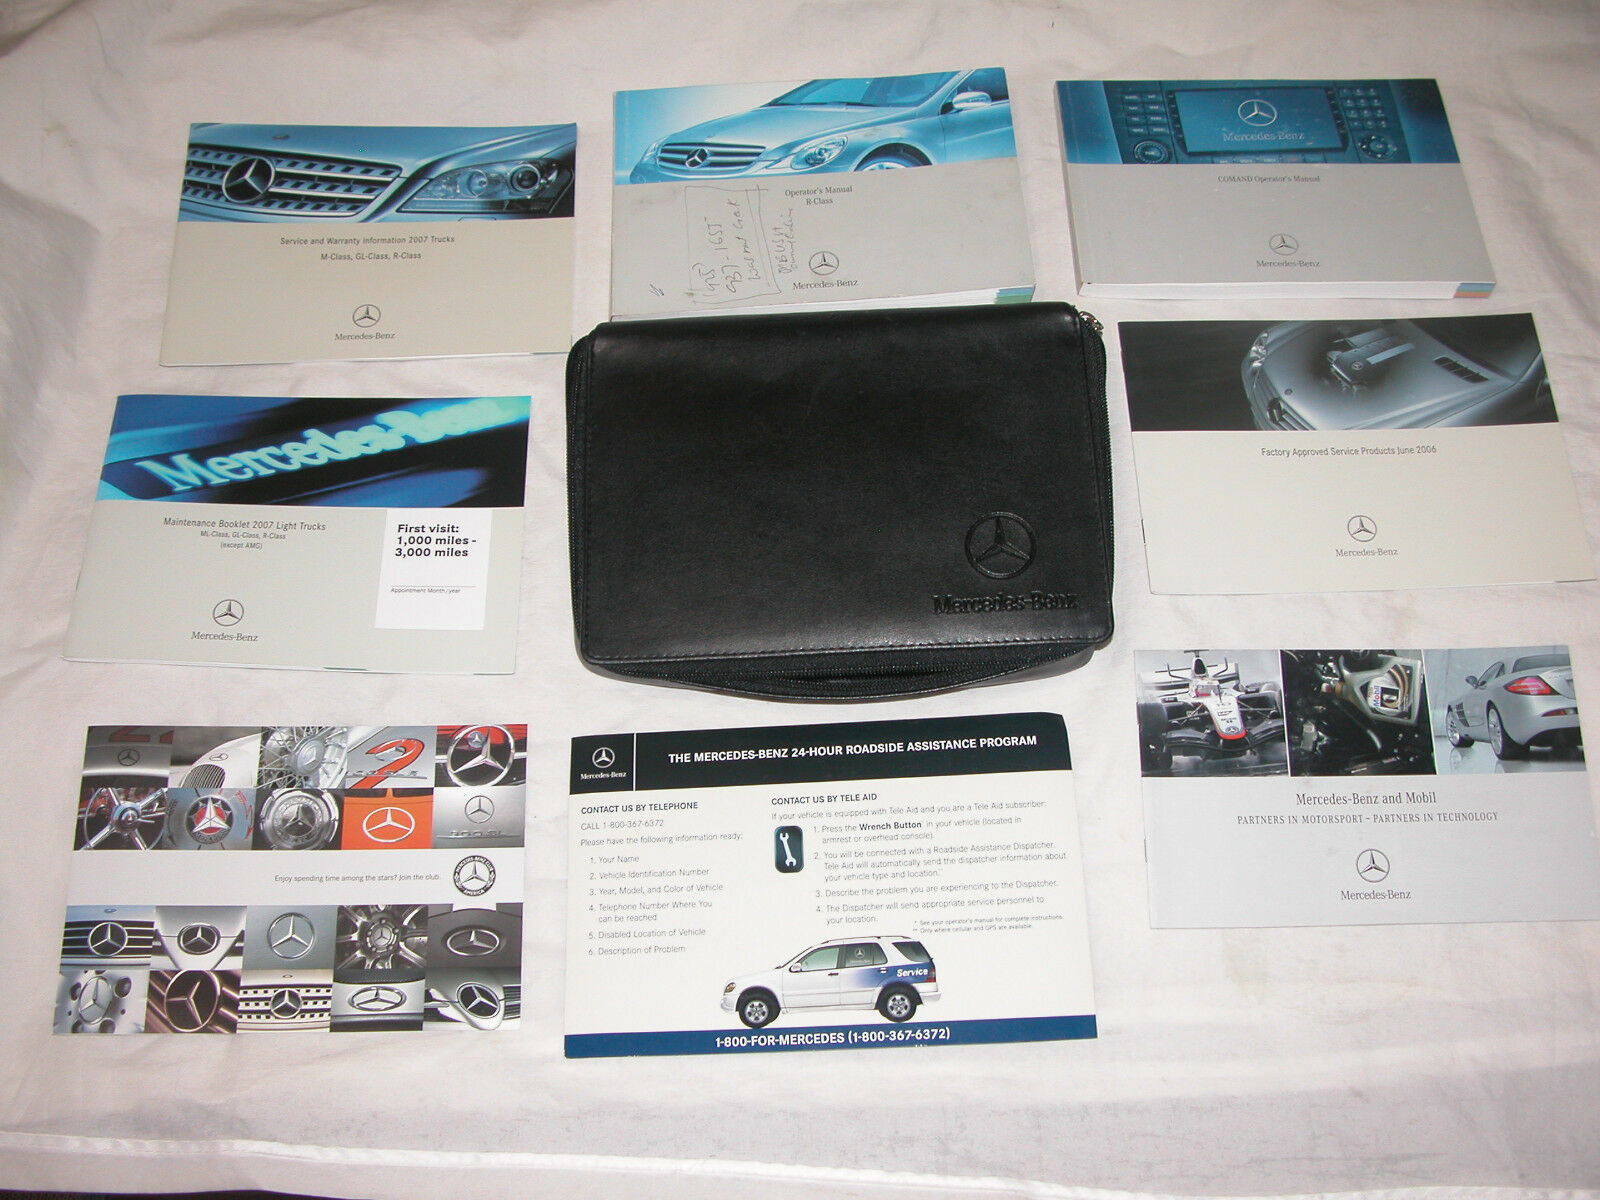 Primary image for 2007 Mercedes Benz Operators Manuals, r-Class R 320 CDI, R 350, R 500, R 63 AMG